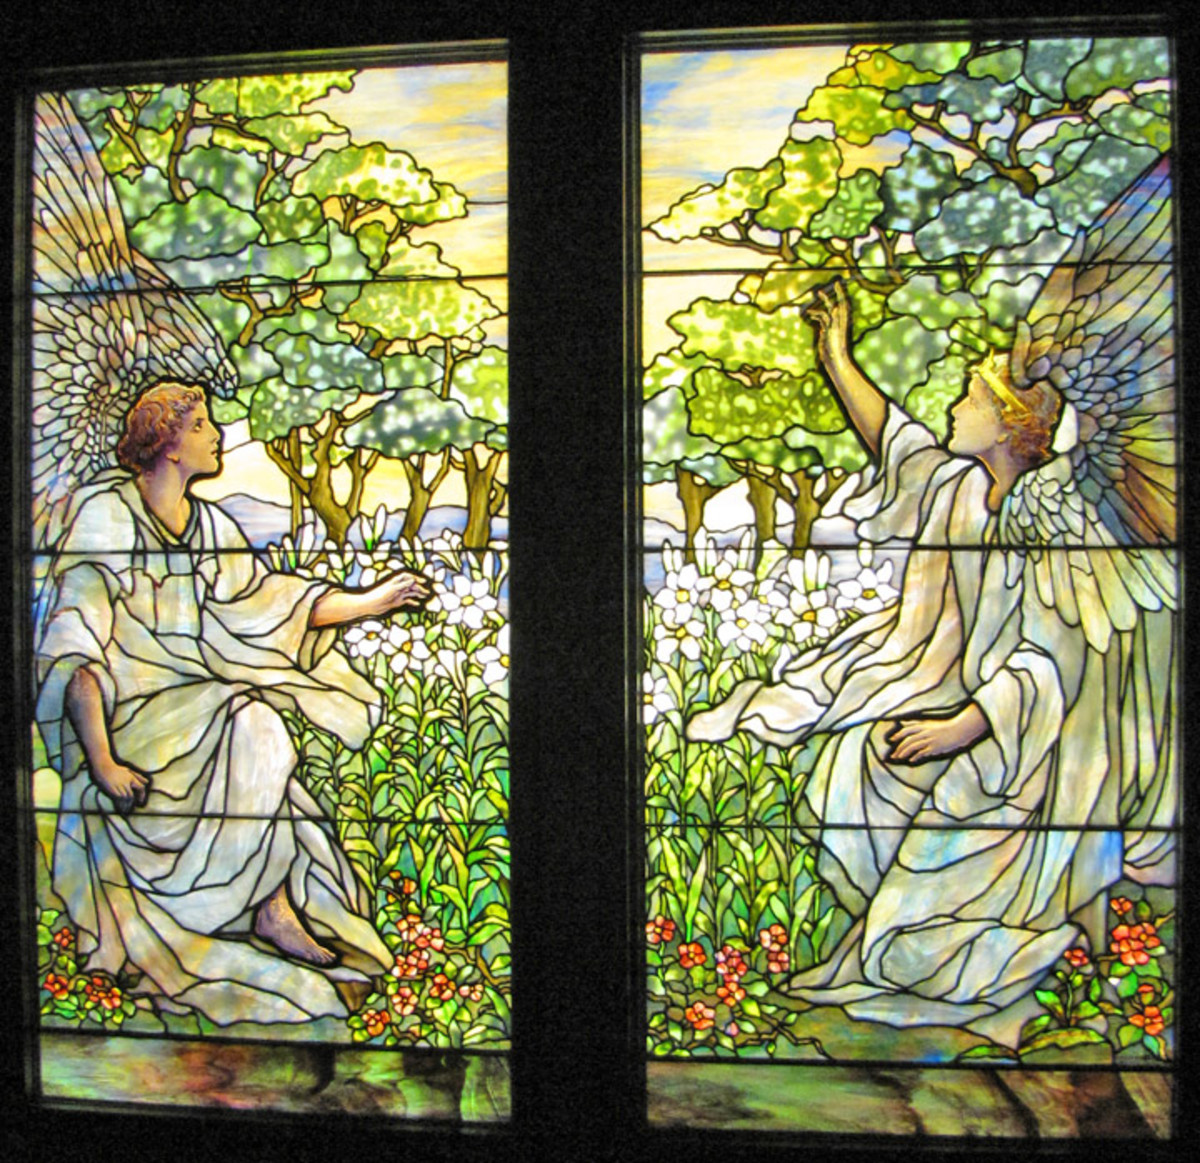 Two Stained Glass Windows with Angels in a green forest and pink flowers